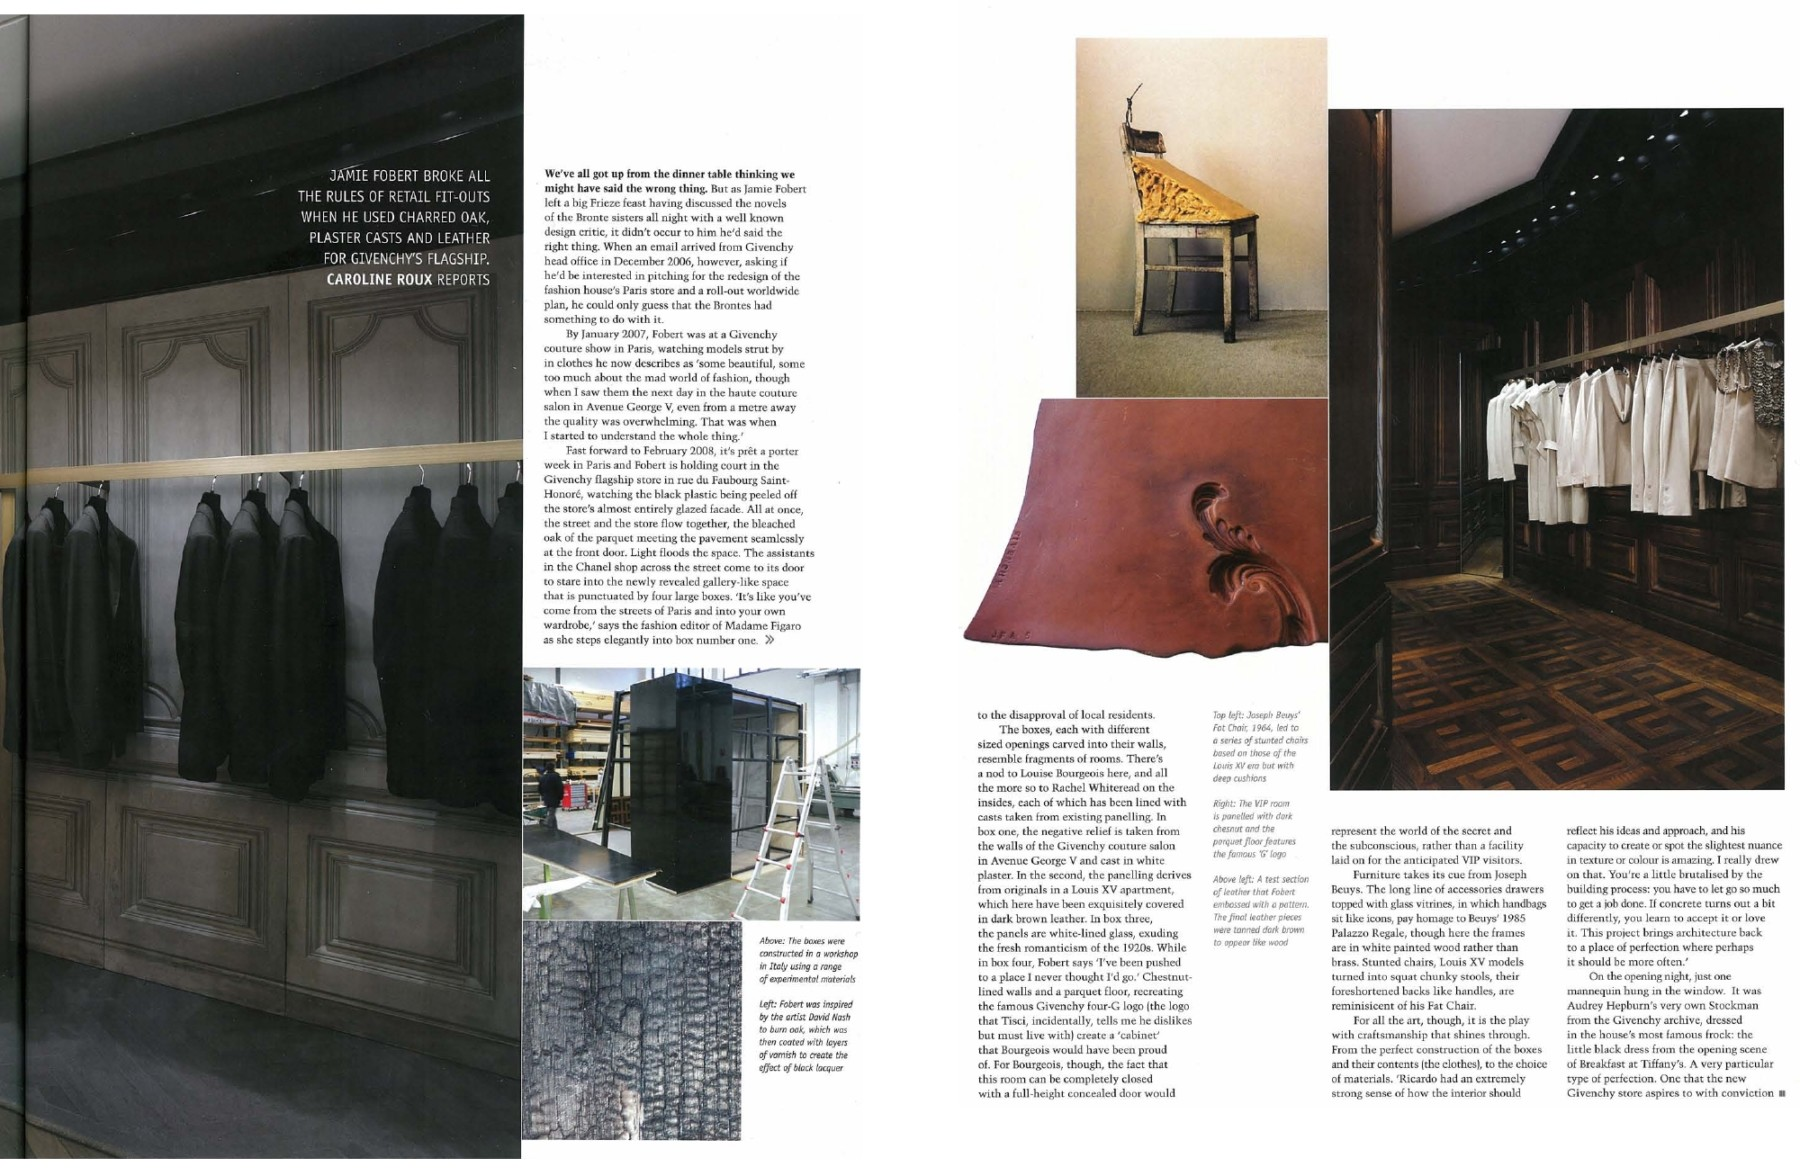 Givenchy-Paris-boutique-designer-fashion-retail-Jamie-Fobert-Architects-article-press-blueprint2